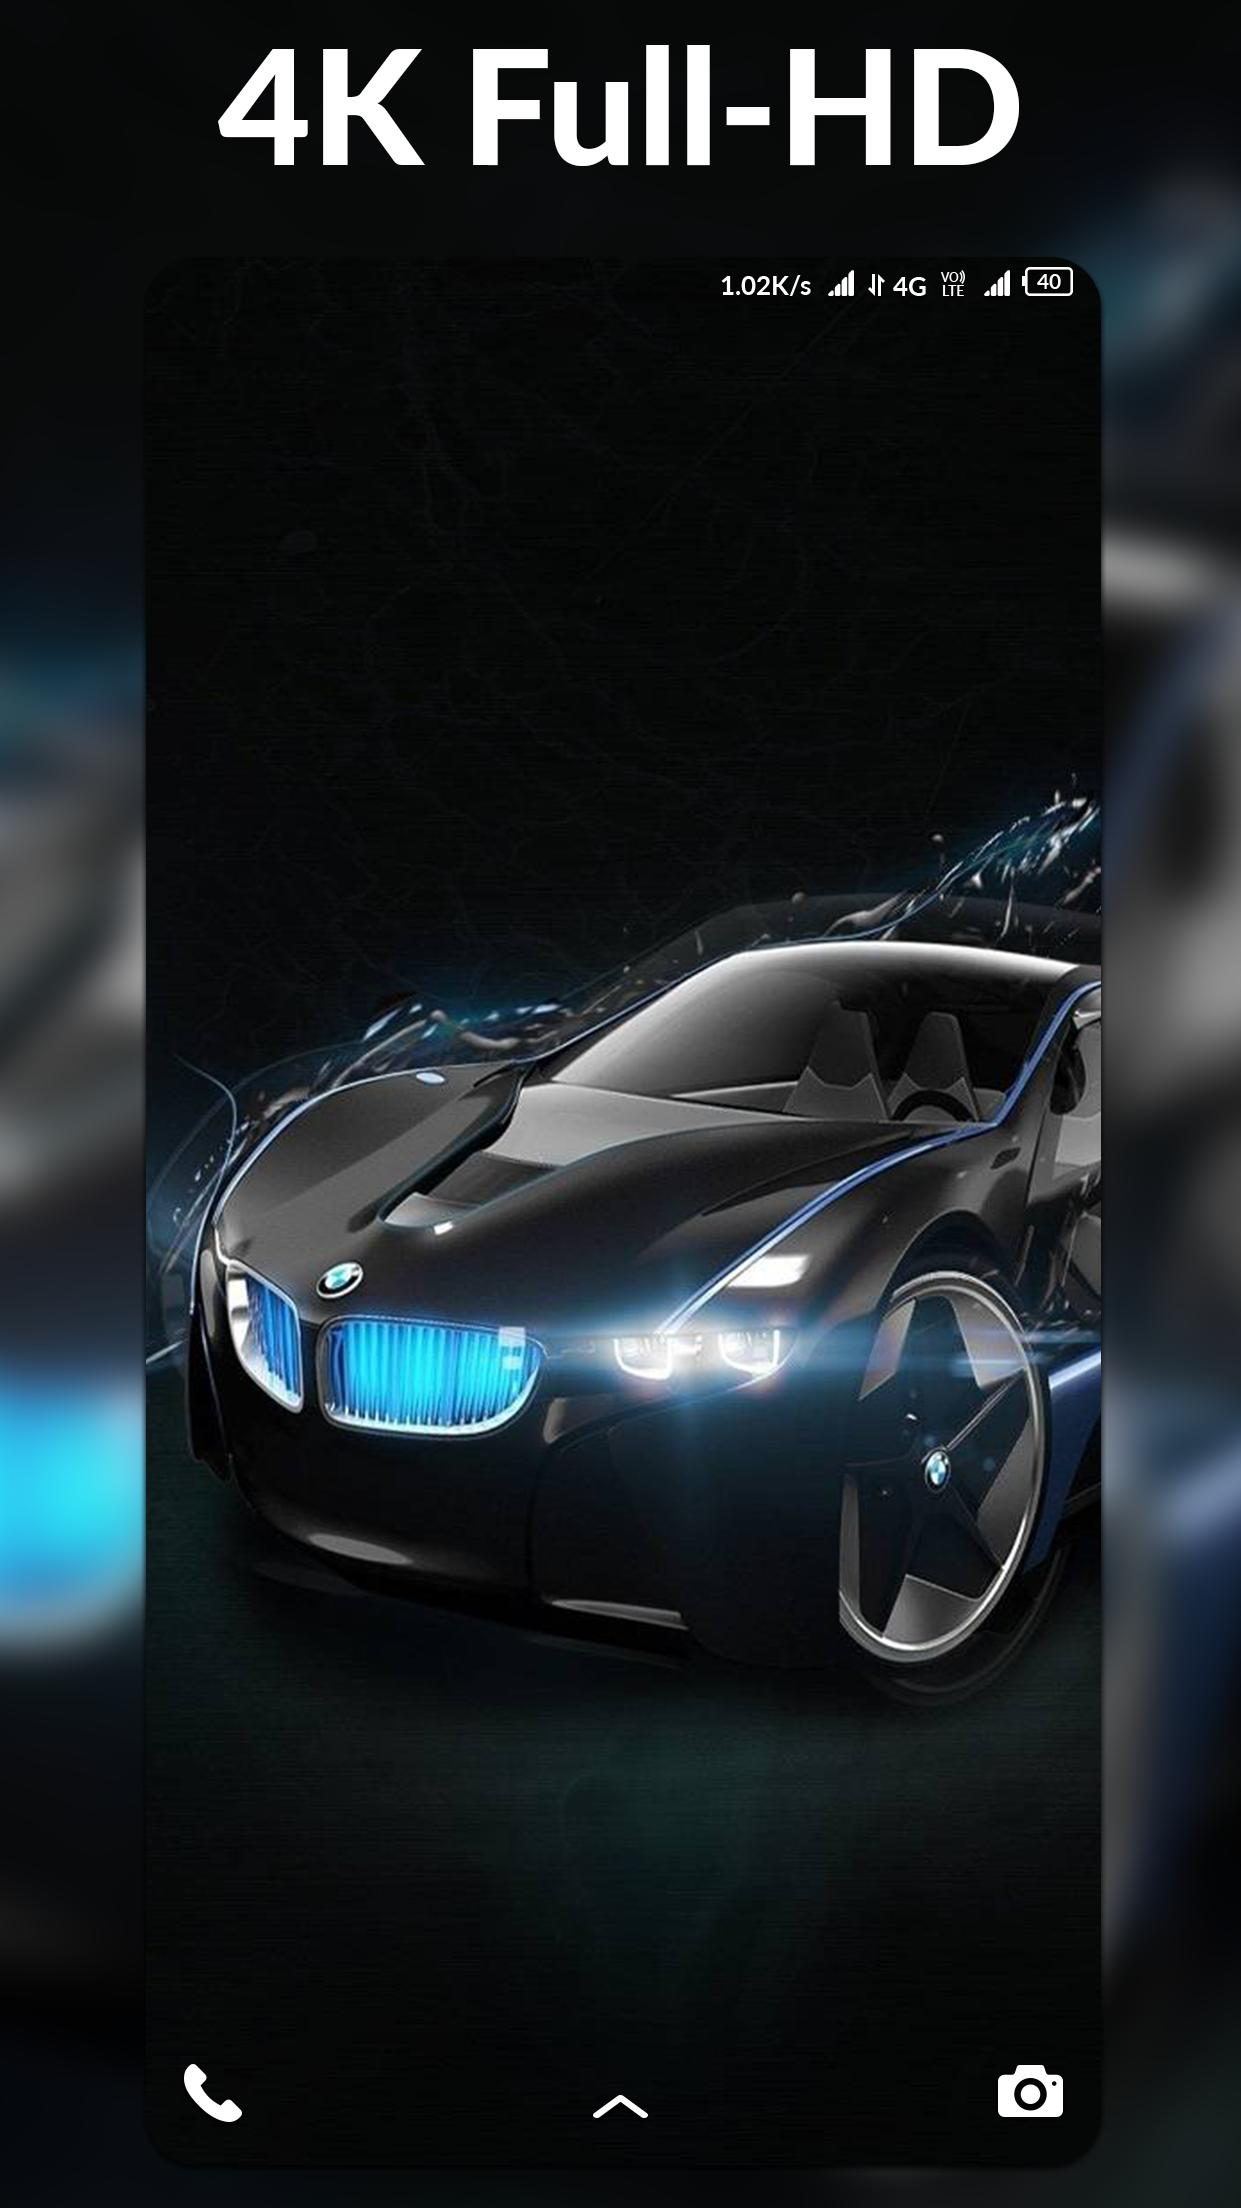 4k Cars Wallpapers Auto Live Wallpaper Changer For Android Apk Download